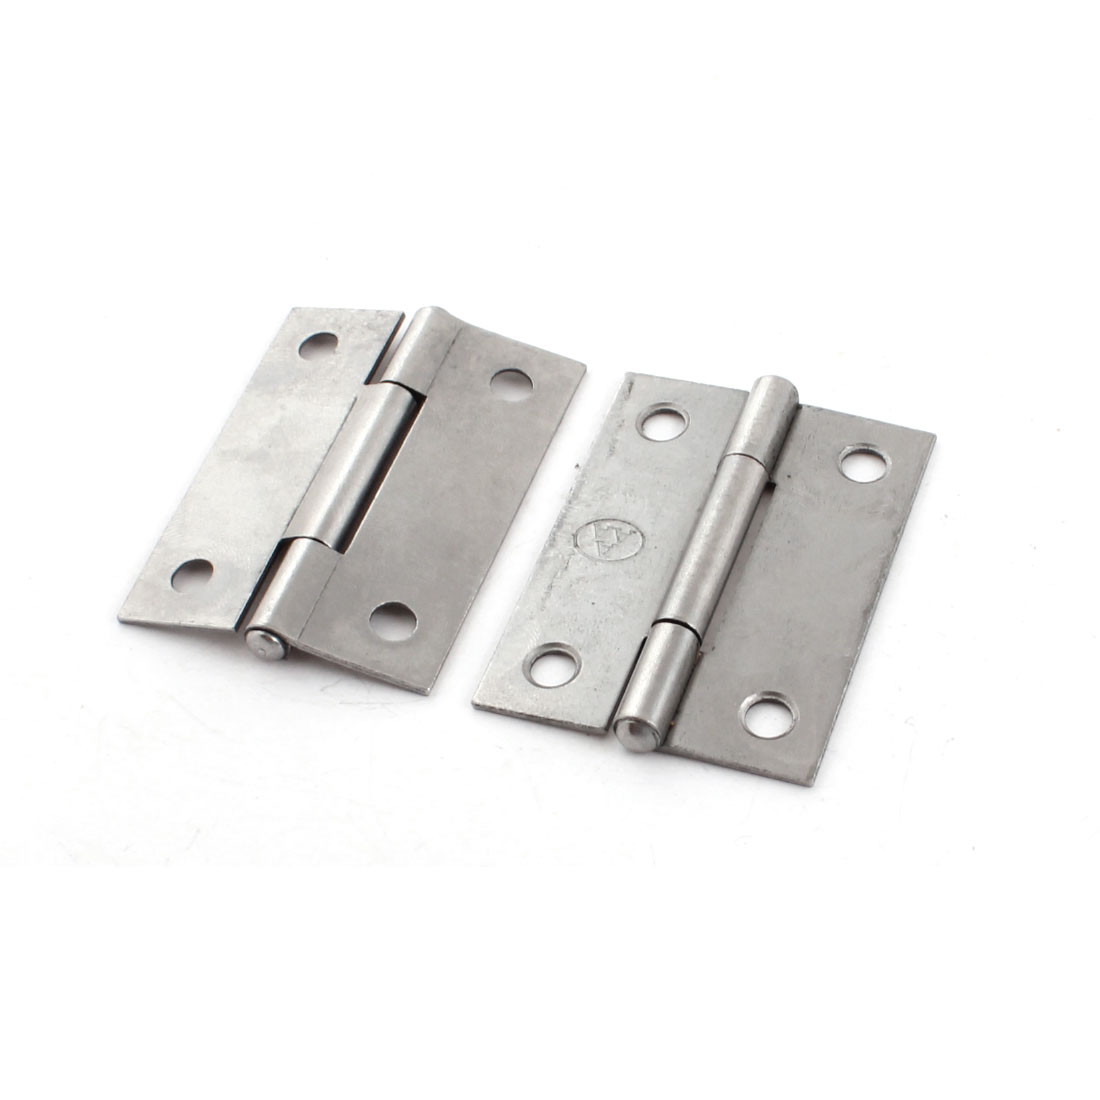 2Pcs 5mm Mounting Hole 50x35x4mm Metal Folding Door Hinge for Cupboard Cabinet